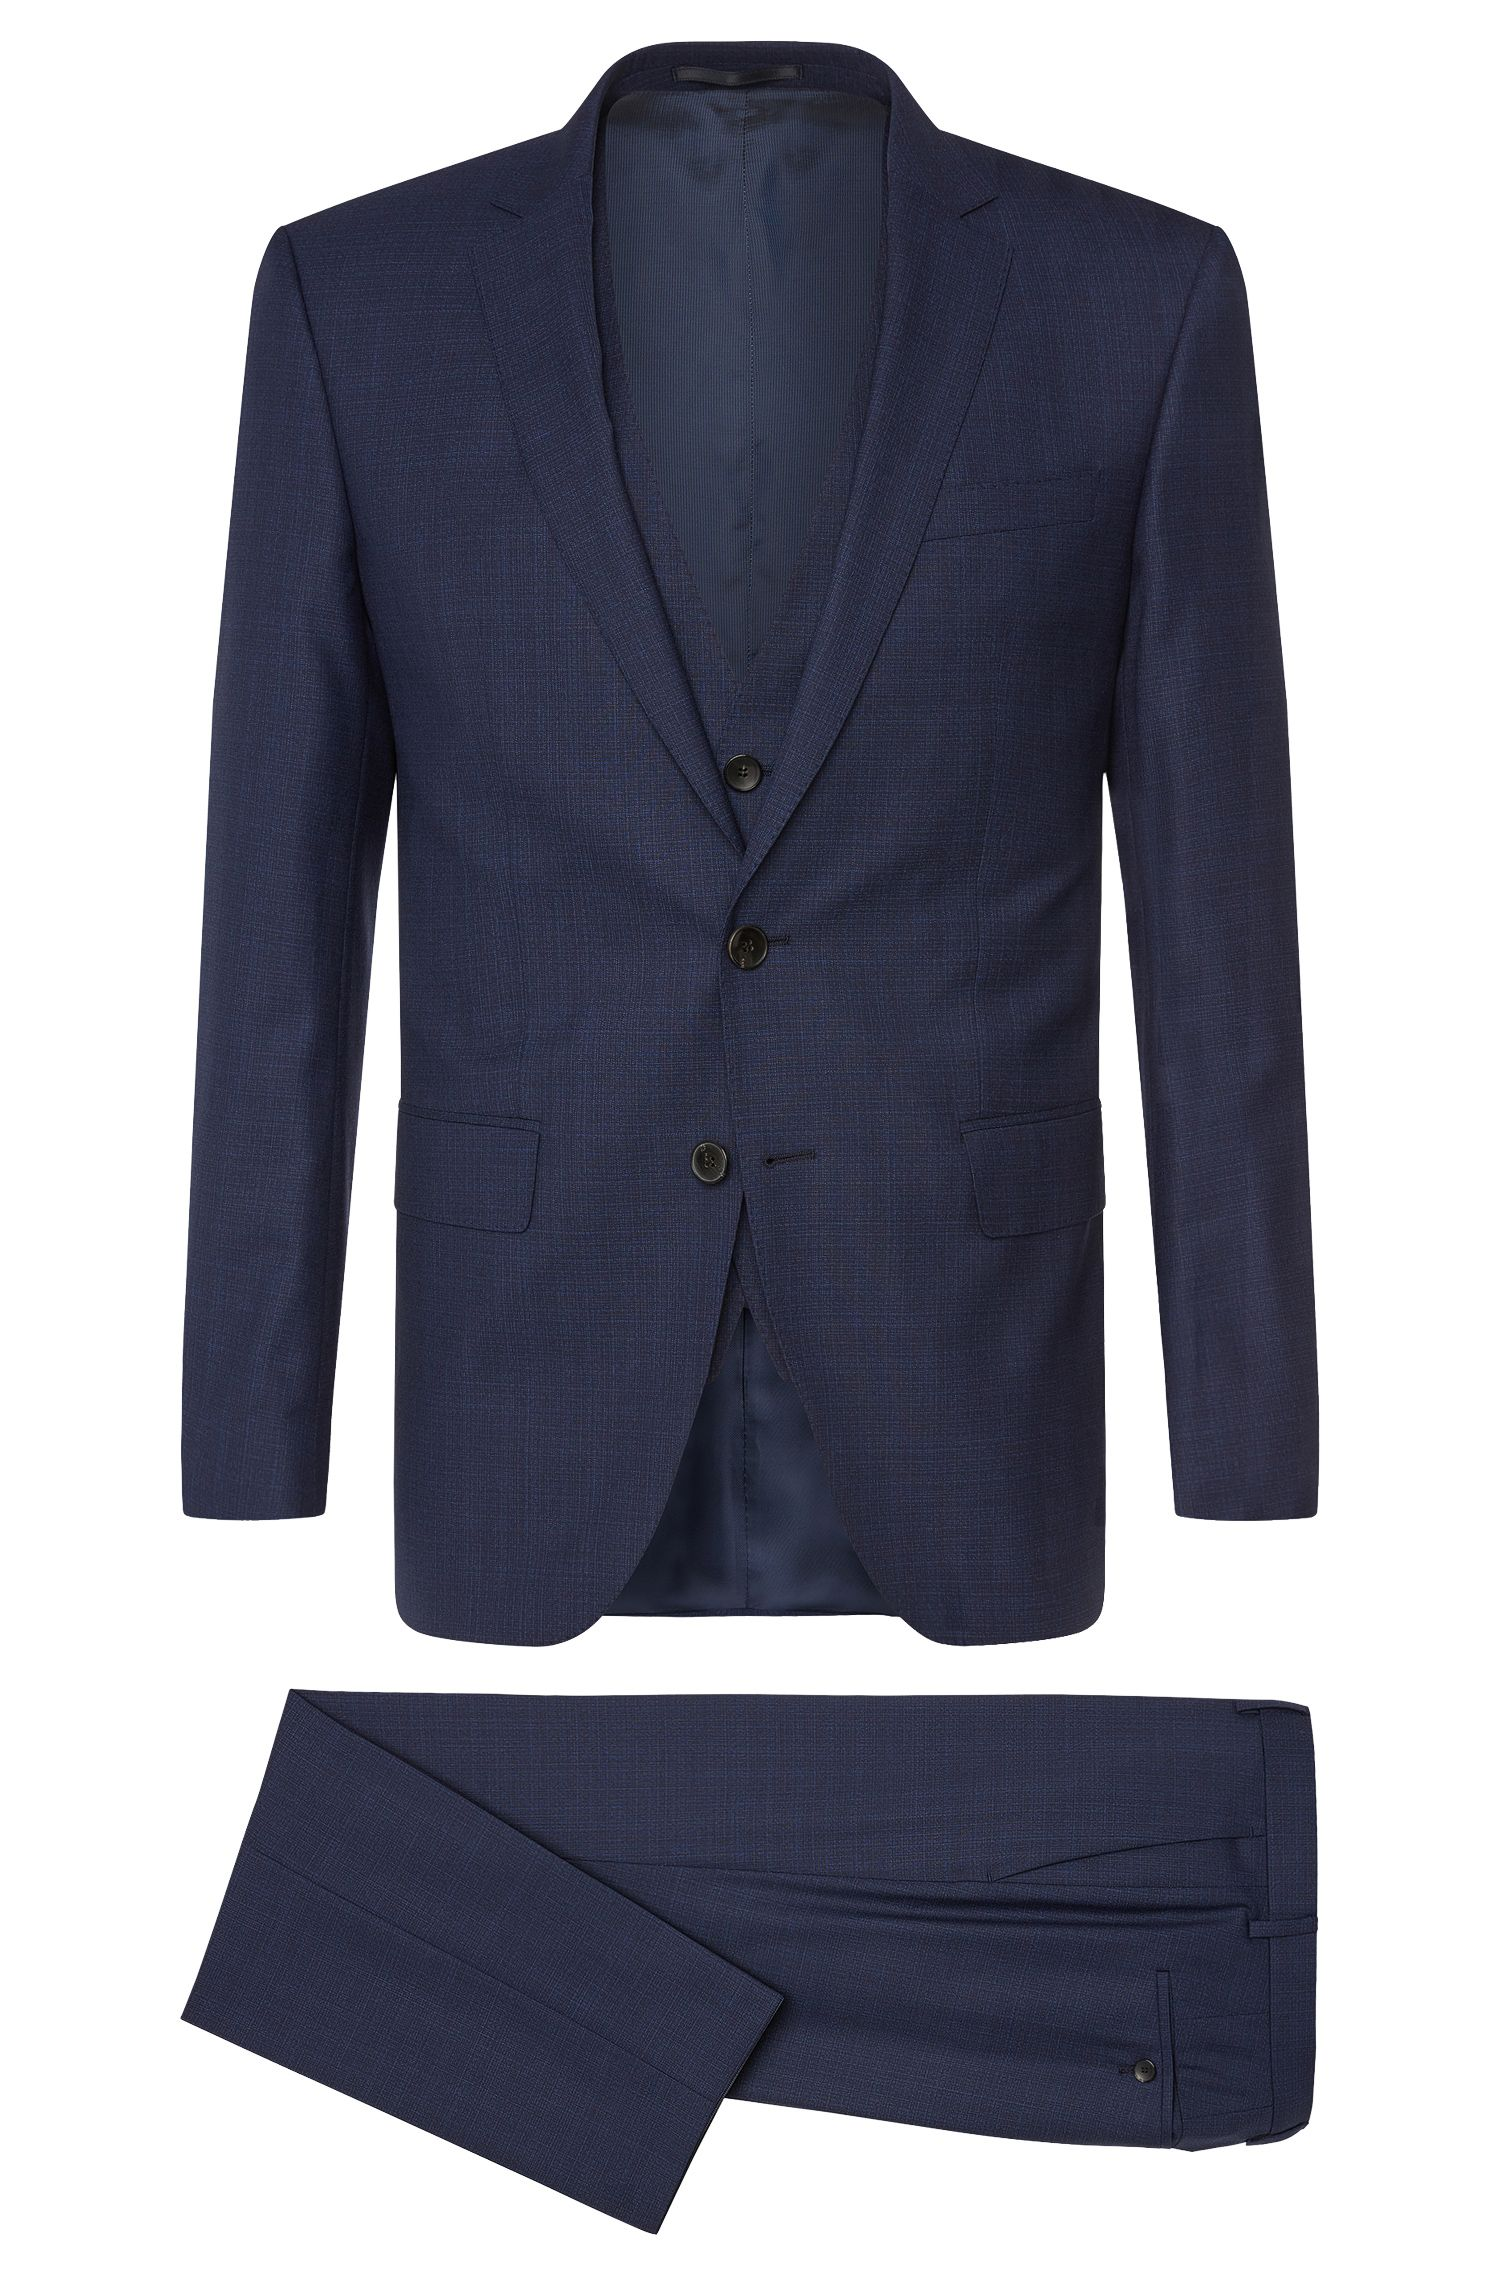 'Huge/Genius WE' | Slim Fit, Italian Super 130 Virgin Wool 3-Piece Suit